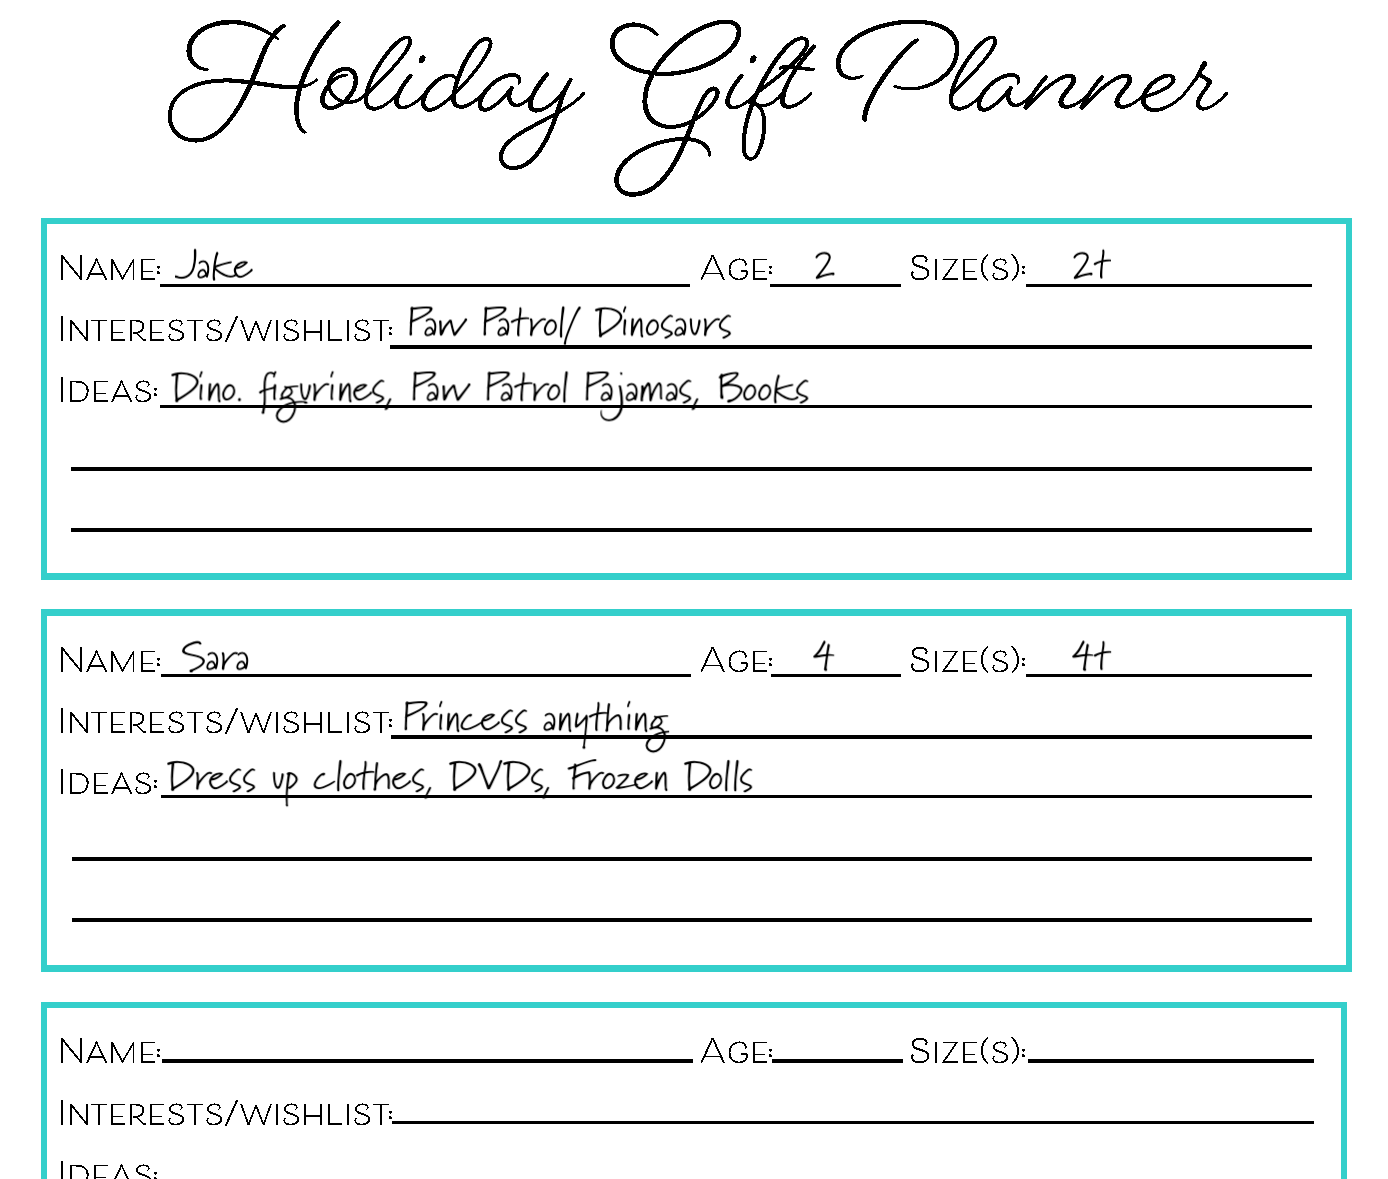 Holiday_Gift_Planner_cropped